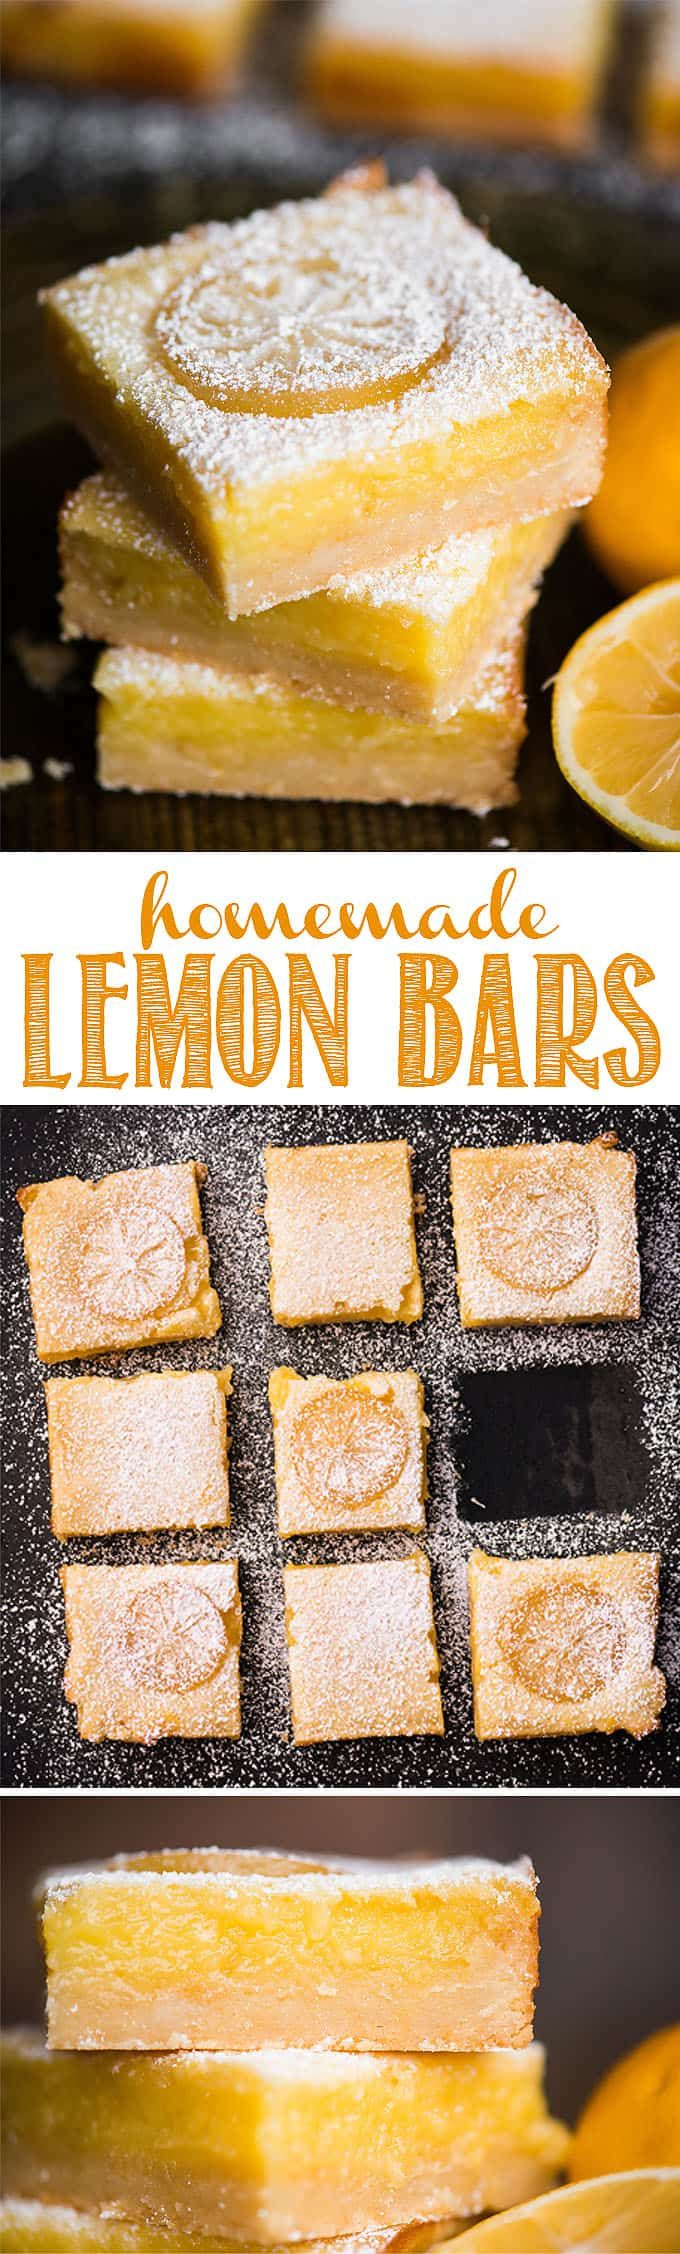 Homemade Lemon Bars, also known as Lemon Squares, are a super sweet and tart bar cookie. The base is a rich and delicious lemon shortbread. The top is a creamy and heavenly lemon custard layer. The ration of lemon to shortbread is perfect. This is the best lemon bar recipe you will find! #lemonbars #lemonsquares #citrus